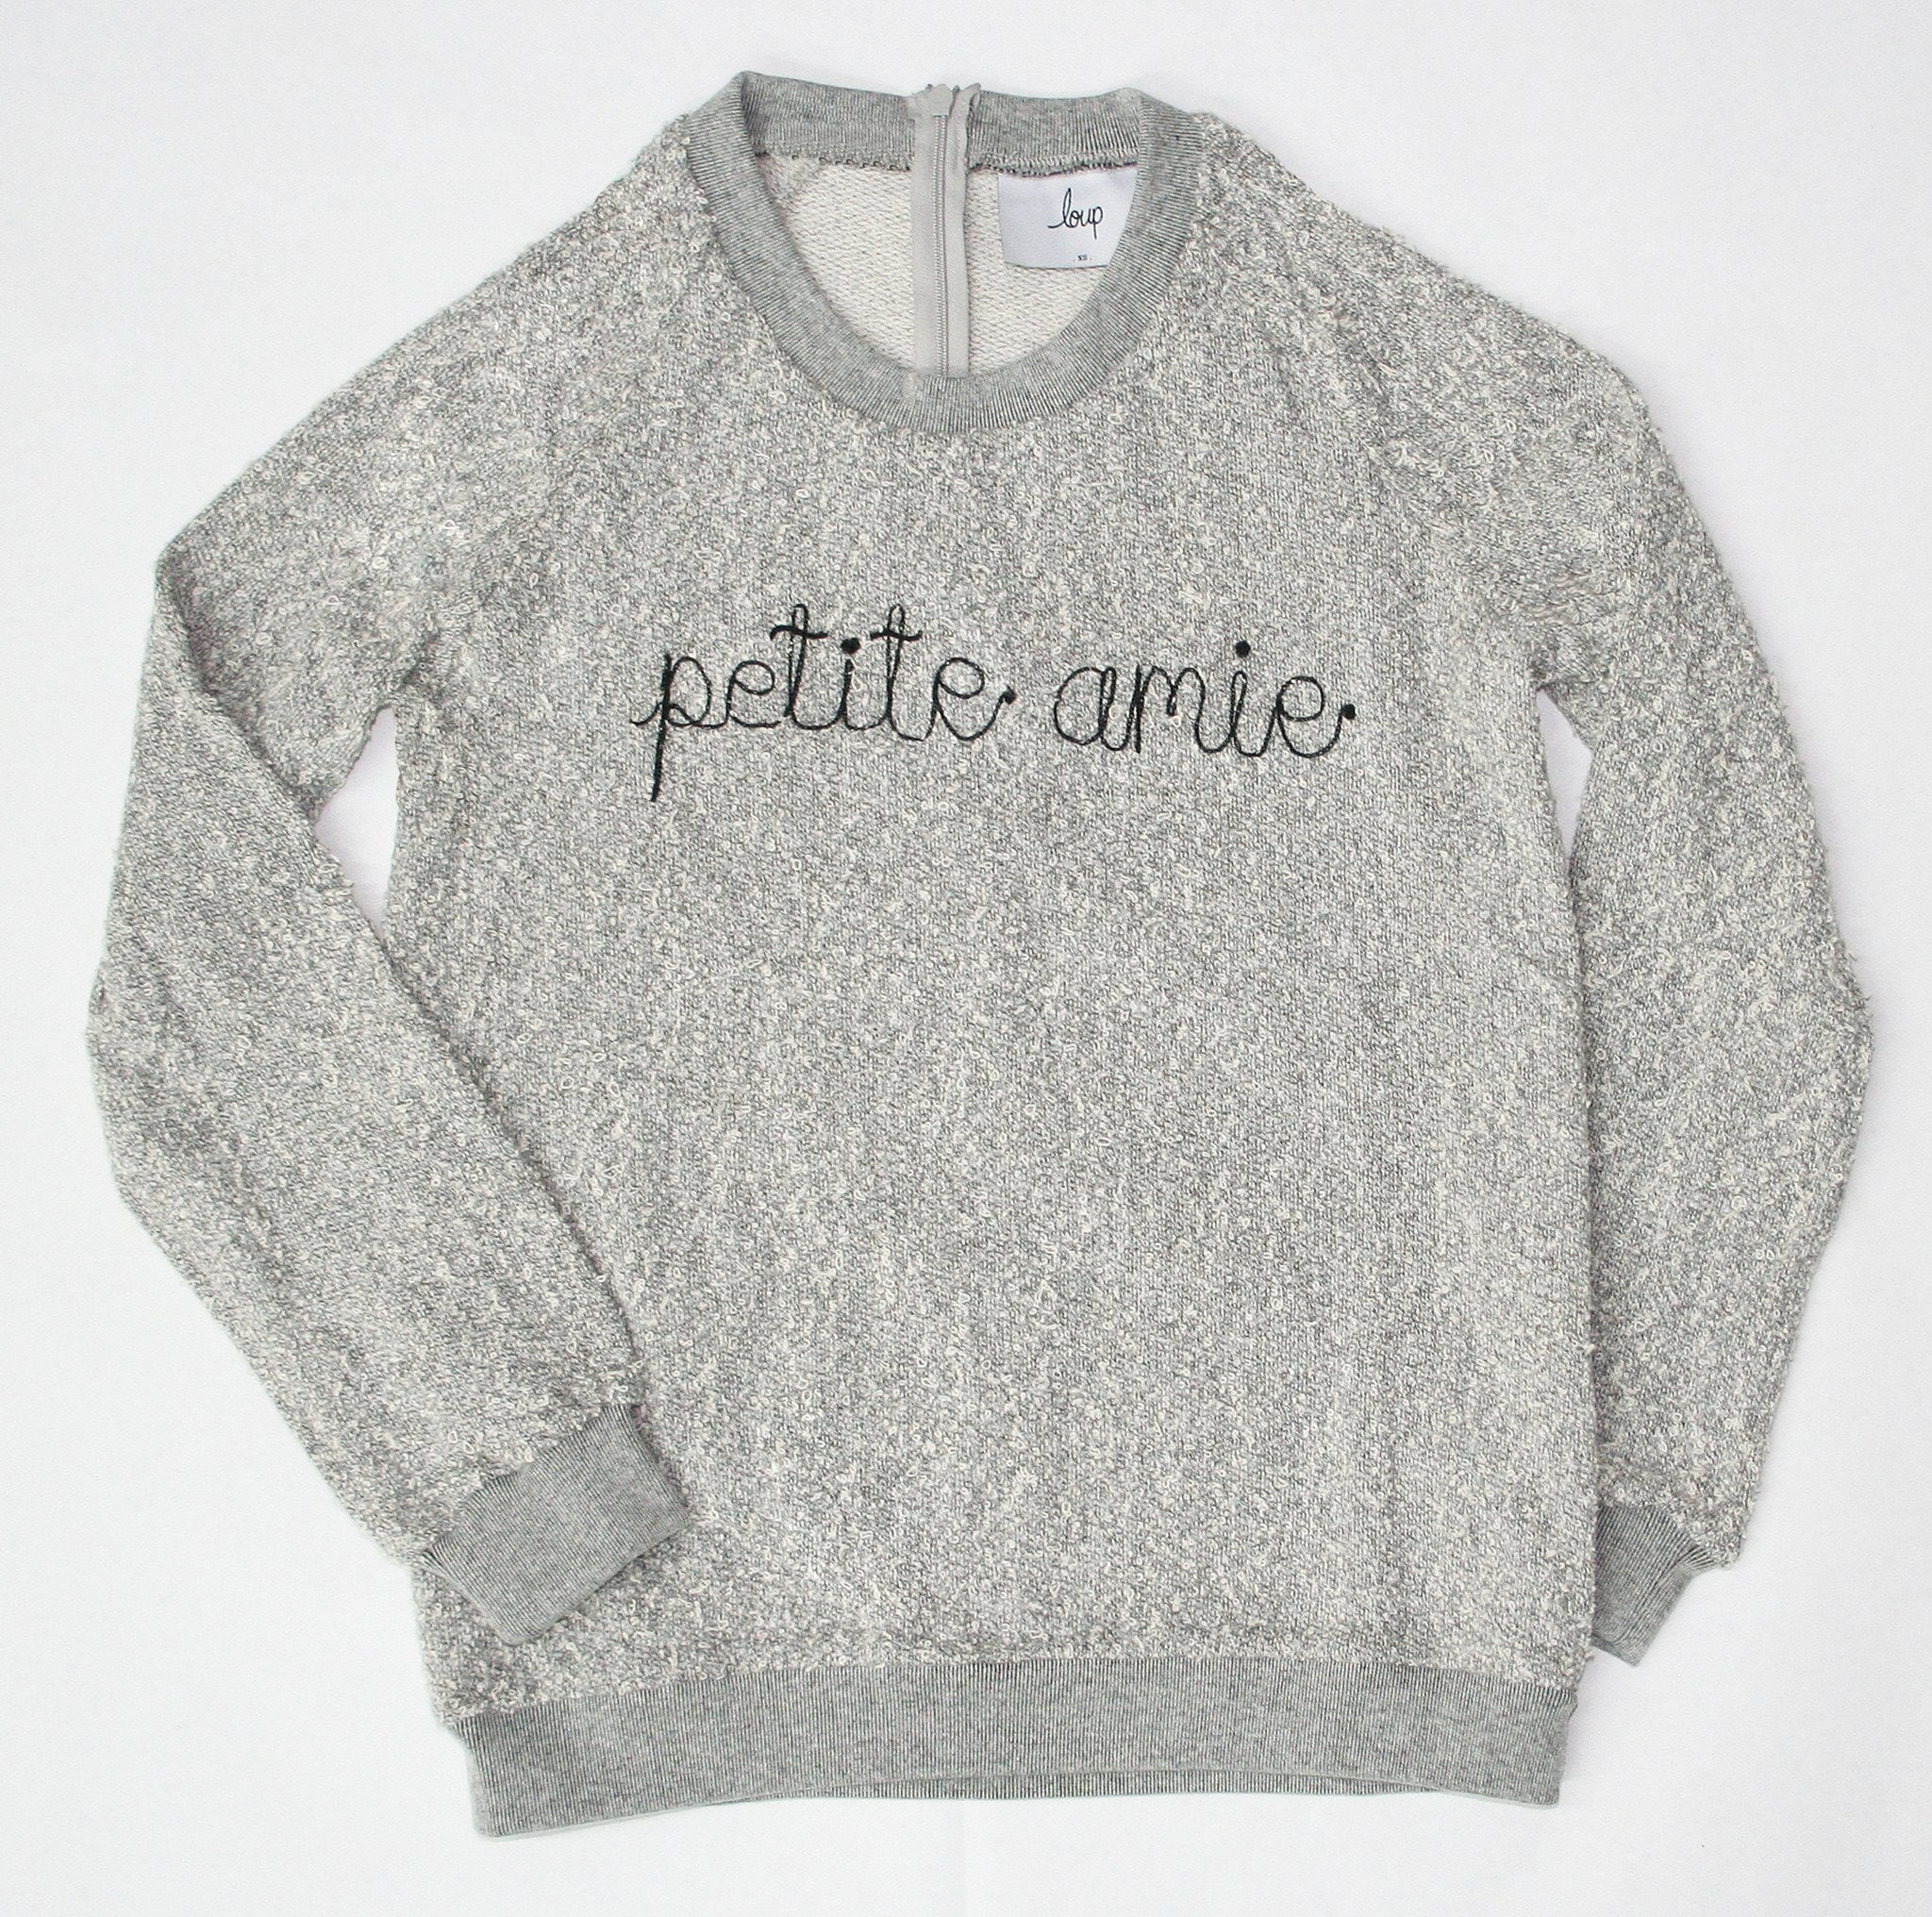 These Comfy Sweatshirts Support The Human Rights Campaign So You Can Feel    Look Good 3b55ecf6b007